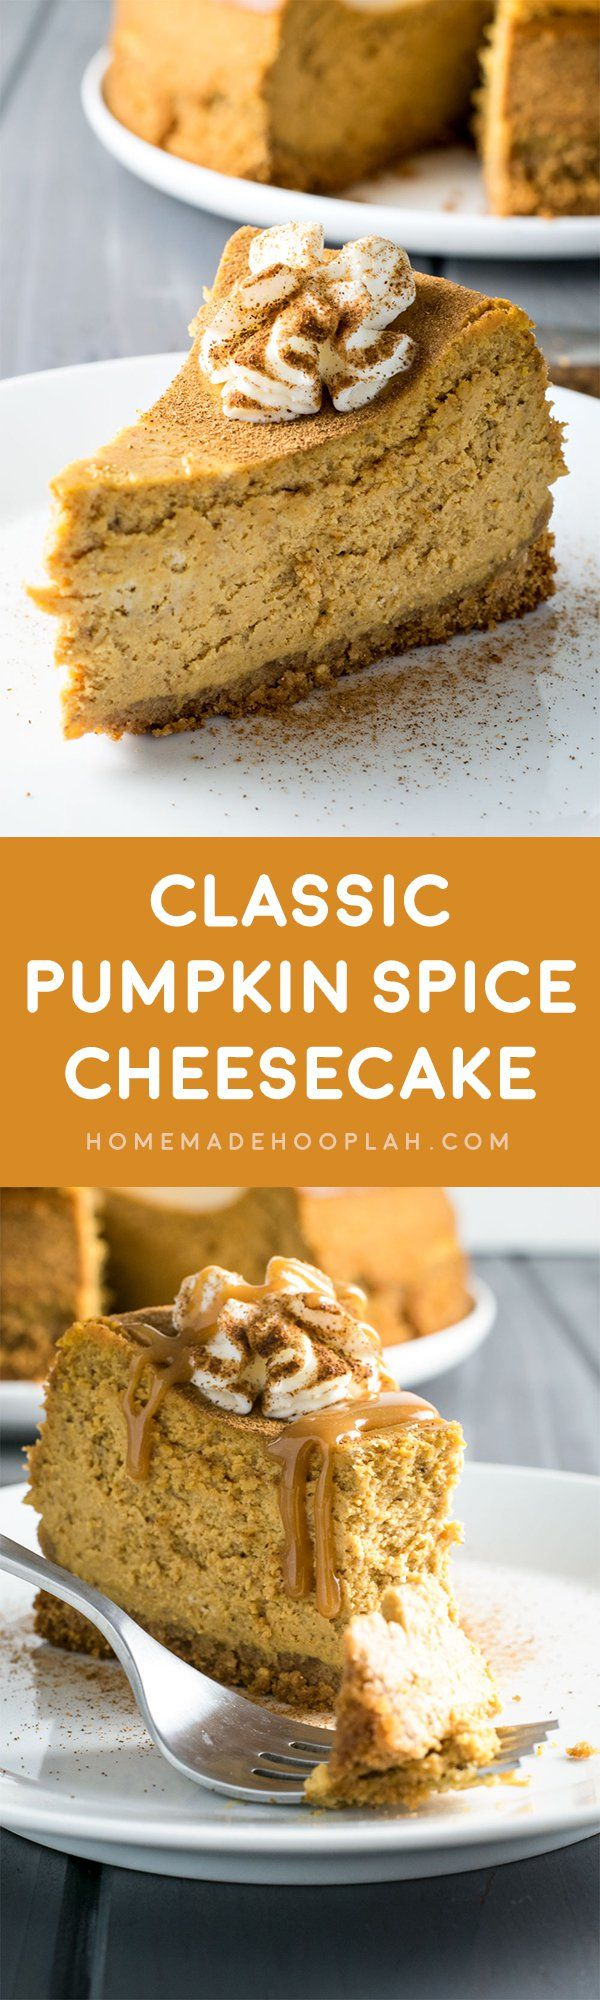 Classic Pumpkin Spice Cheesecake! Classic cheesecake infused with creamy pumpkin, plus a double dose of pumpkin spice - it's baked both in the cake and the crust! Perfect Thanksgiving Dessert! | HomemadeHooplah.com